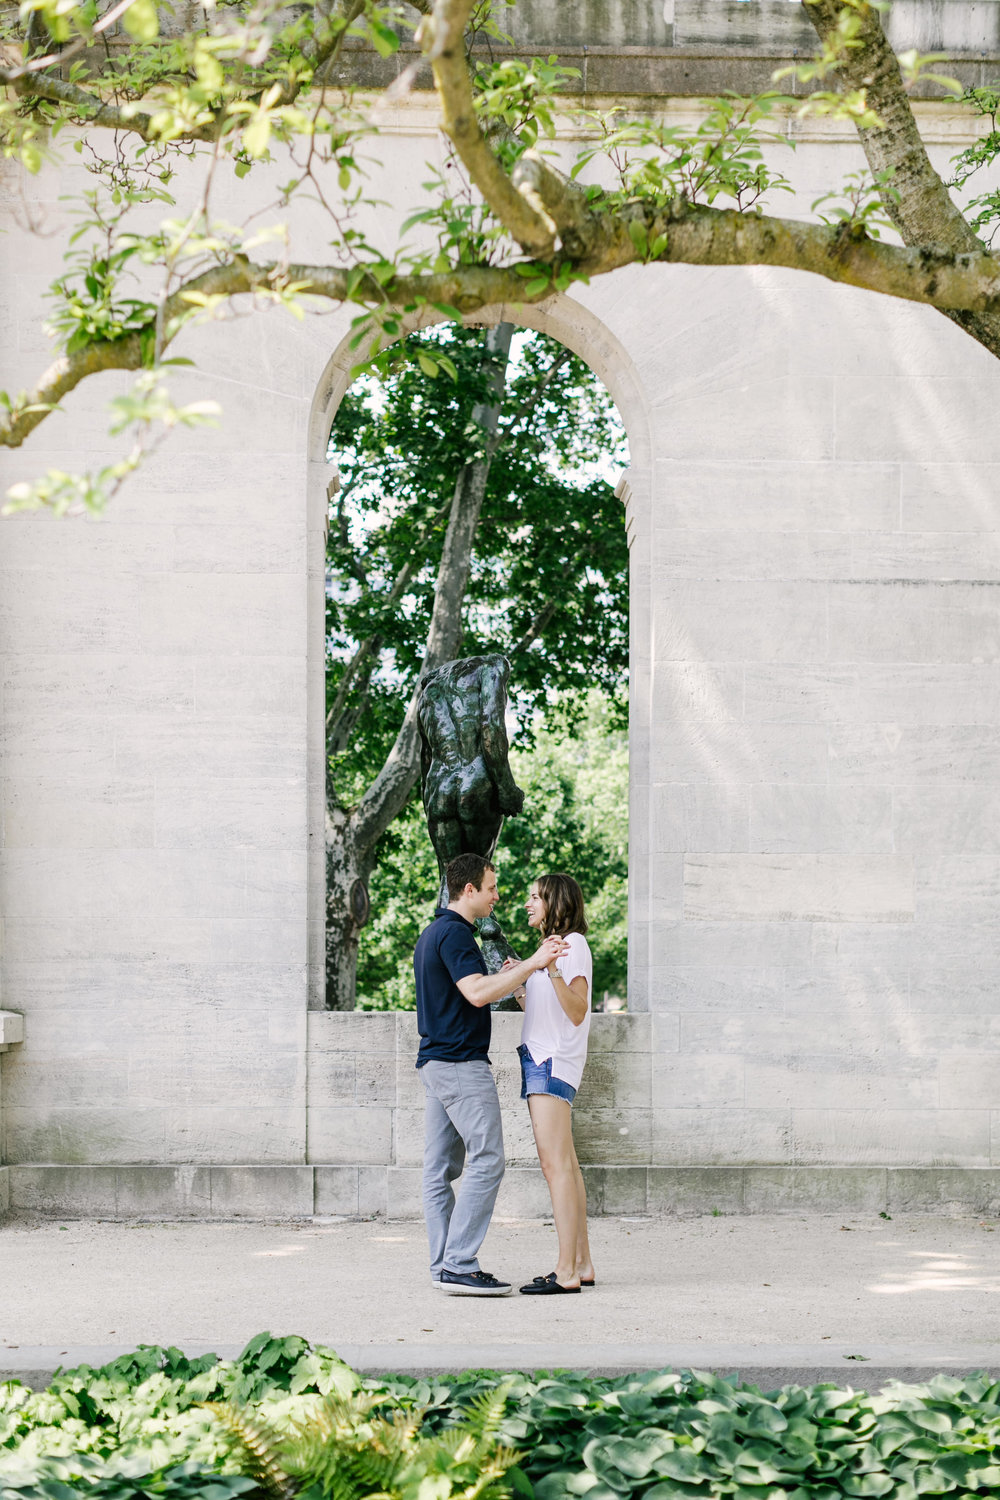 photography-natural-candid-engaged-proposal-philadelphia-wedding-rodin museum-barnes foundation-parkway-modern-lifestyle-14.JPG